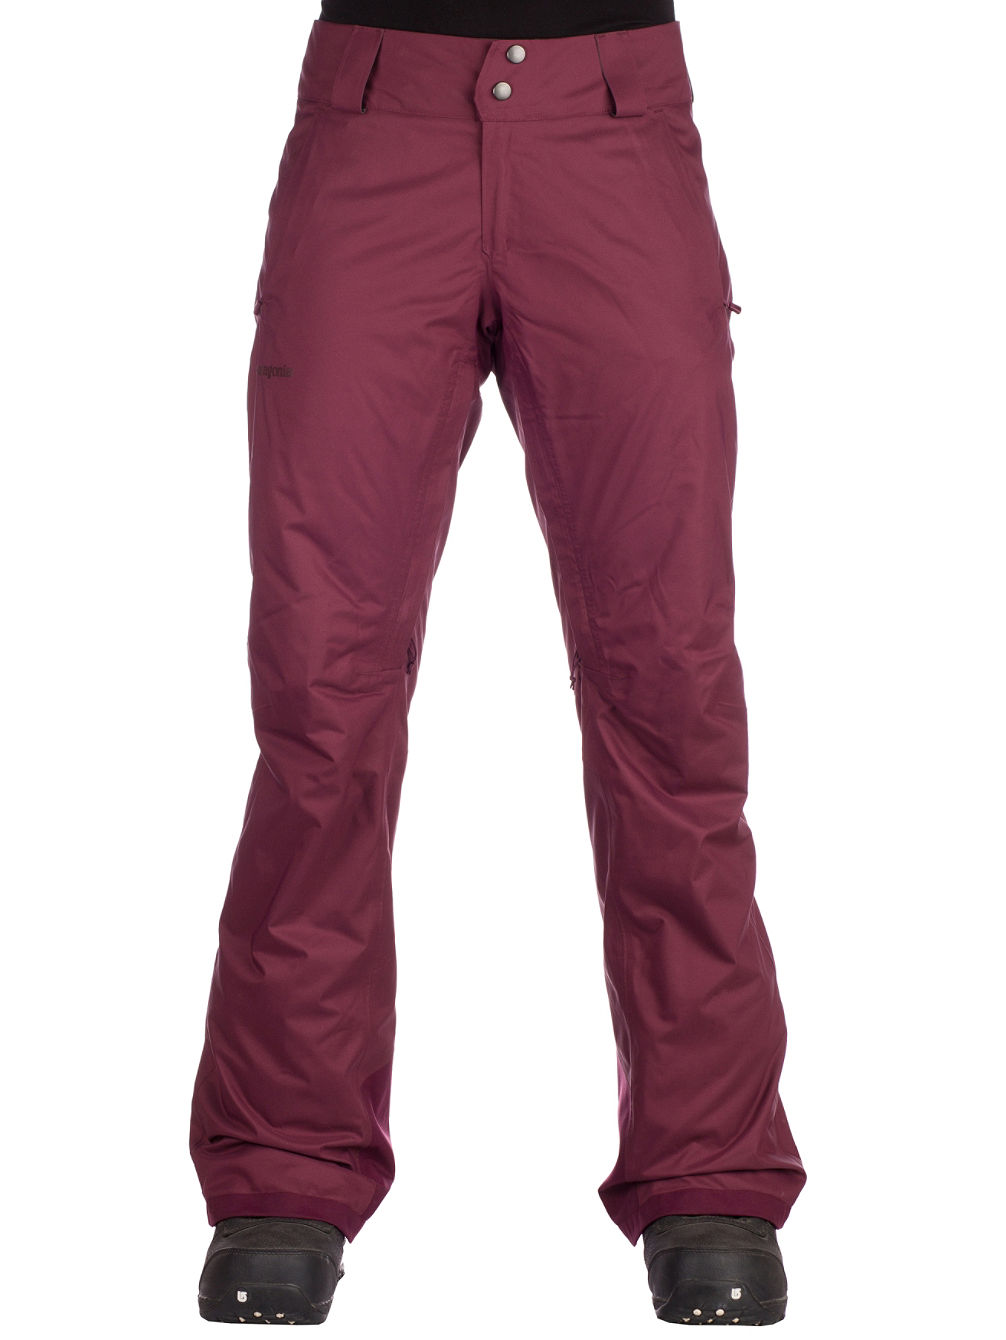 Insulated Snowbelle Pants